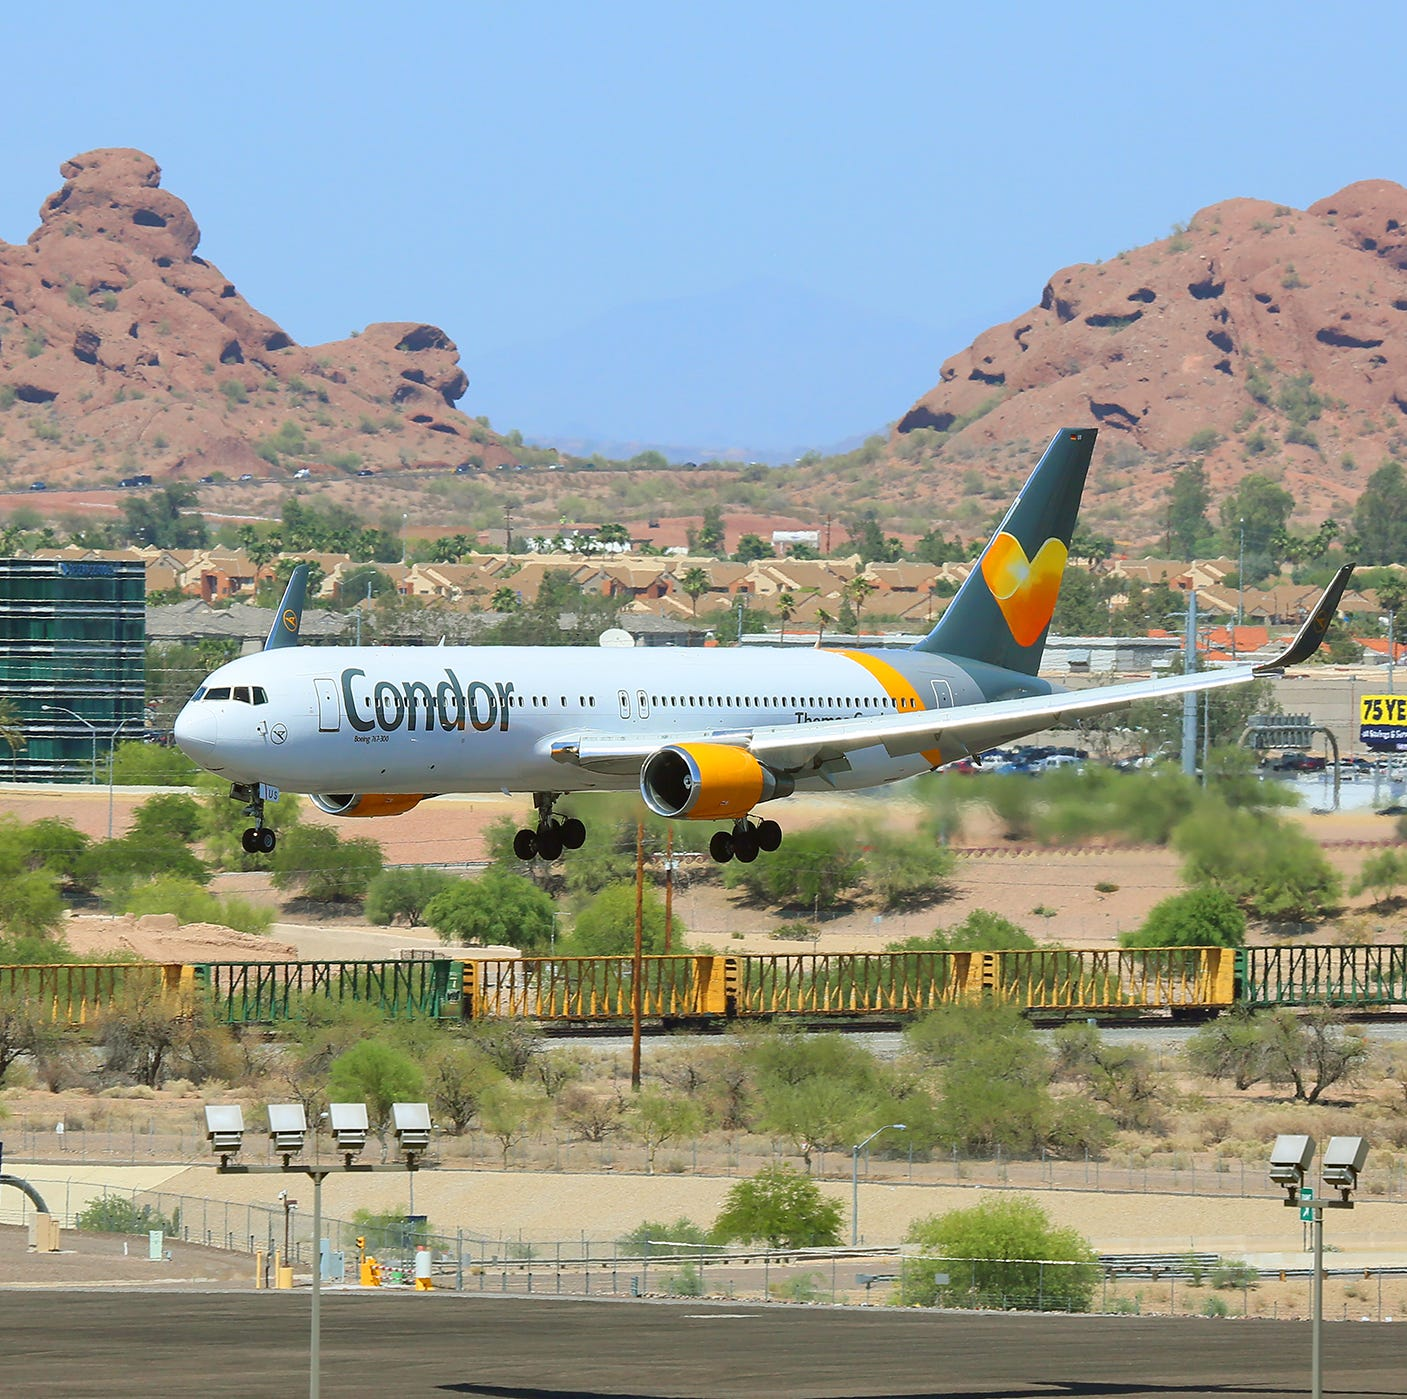 Condor Airlines looks to expand in Phoenix after surprising first season